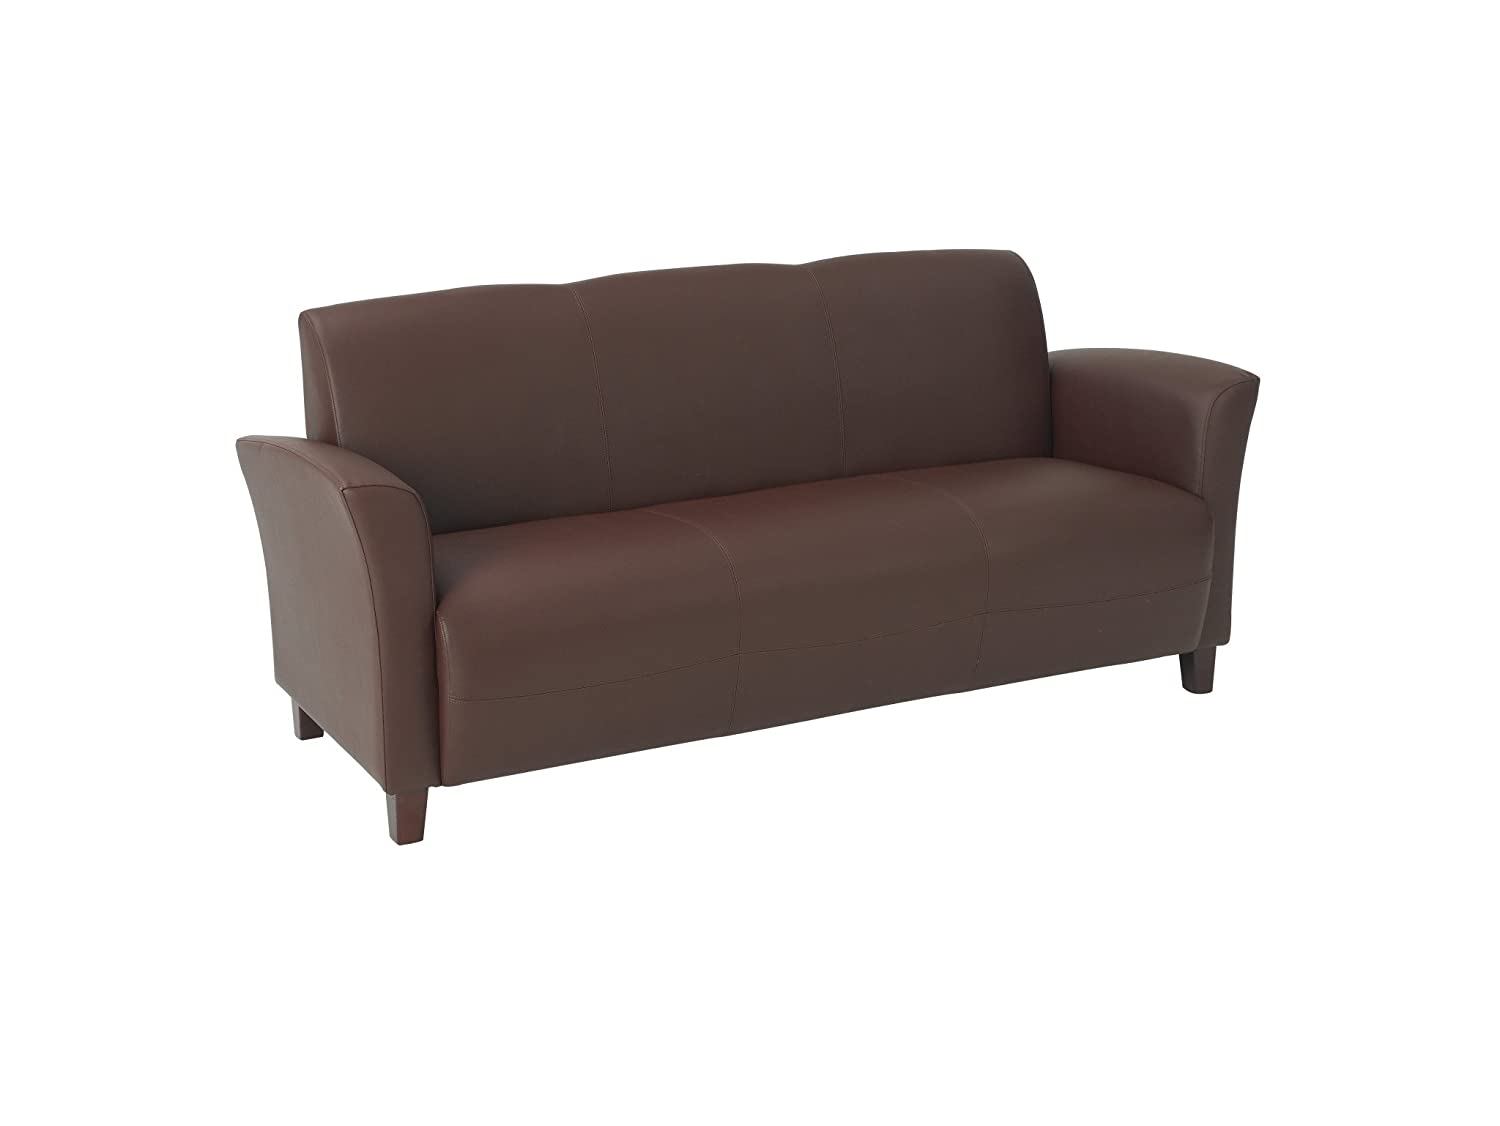 Office Star Breeze Wine Eco Leather Sofa with Cherry Finish Legs